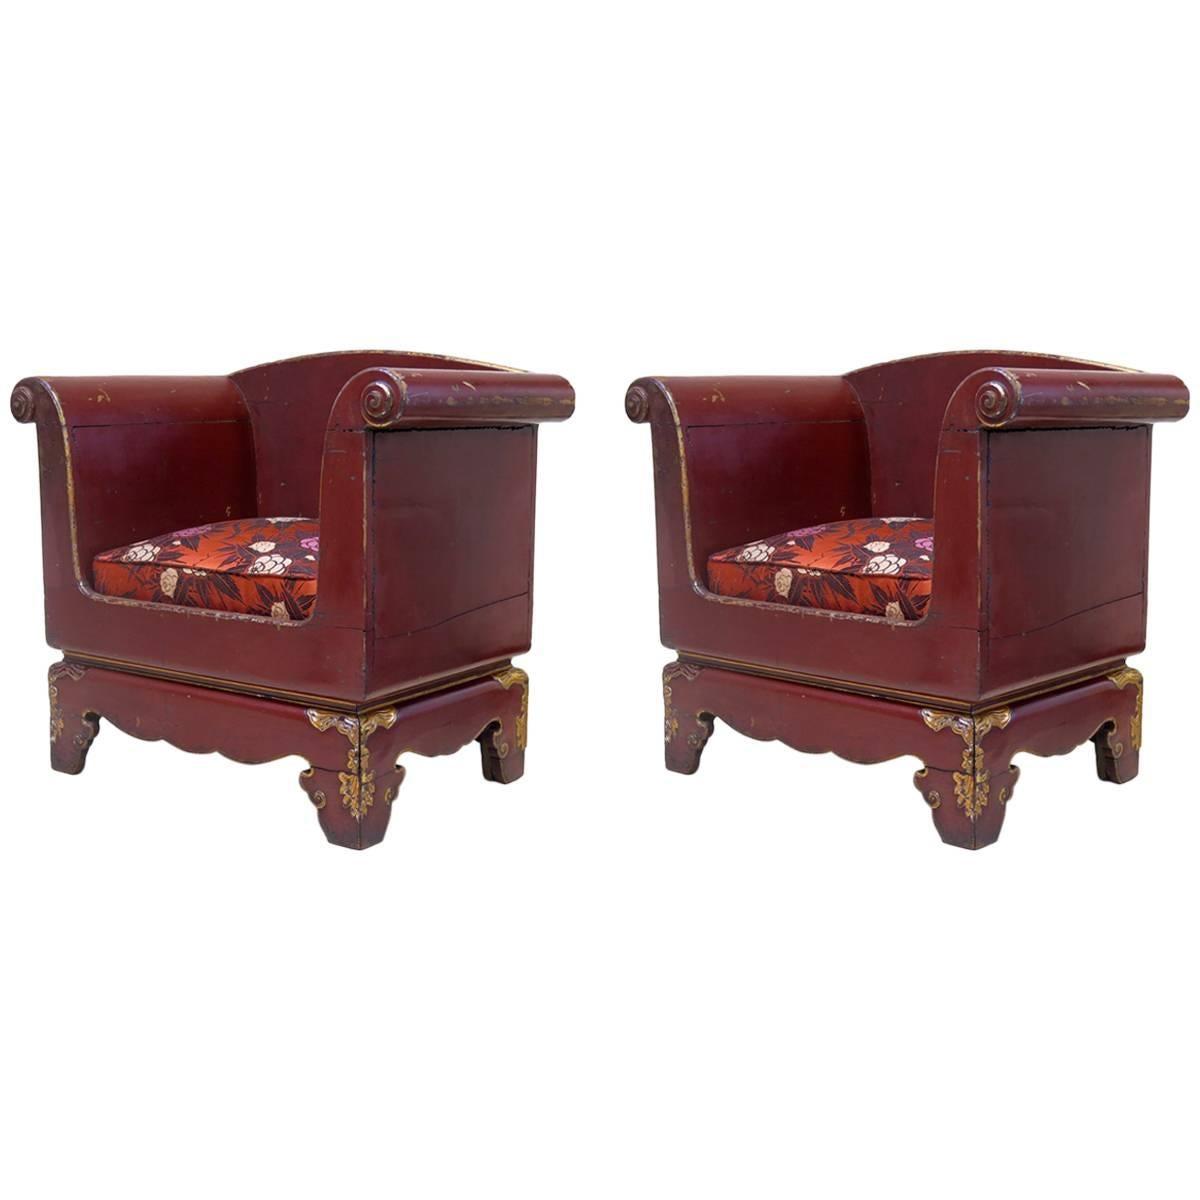 Pair of Chinoiserie Art Deco Chairs, France, circa 1930s